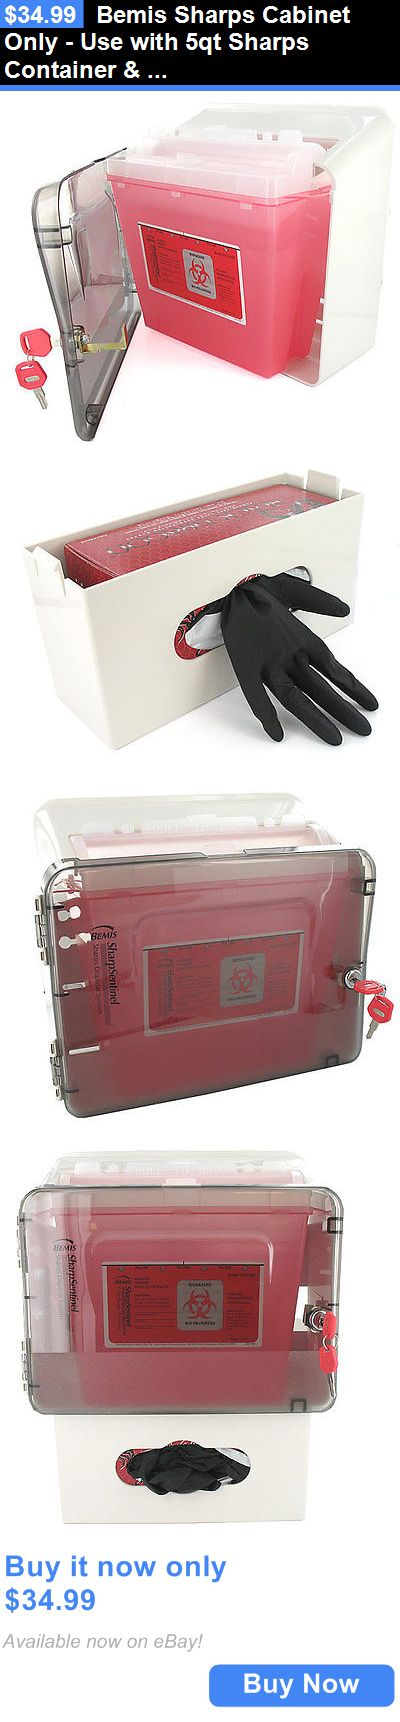 Other Tattoos and Body Art: Bemis Sharps Cabinet Only - Use With 5Qt Sharps Container And Glove Box Holder BUY IT NOW ONLY: $34.99